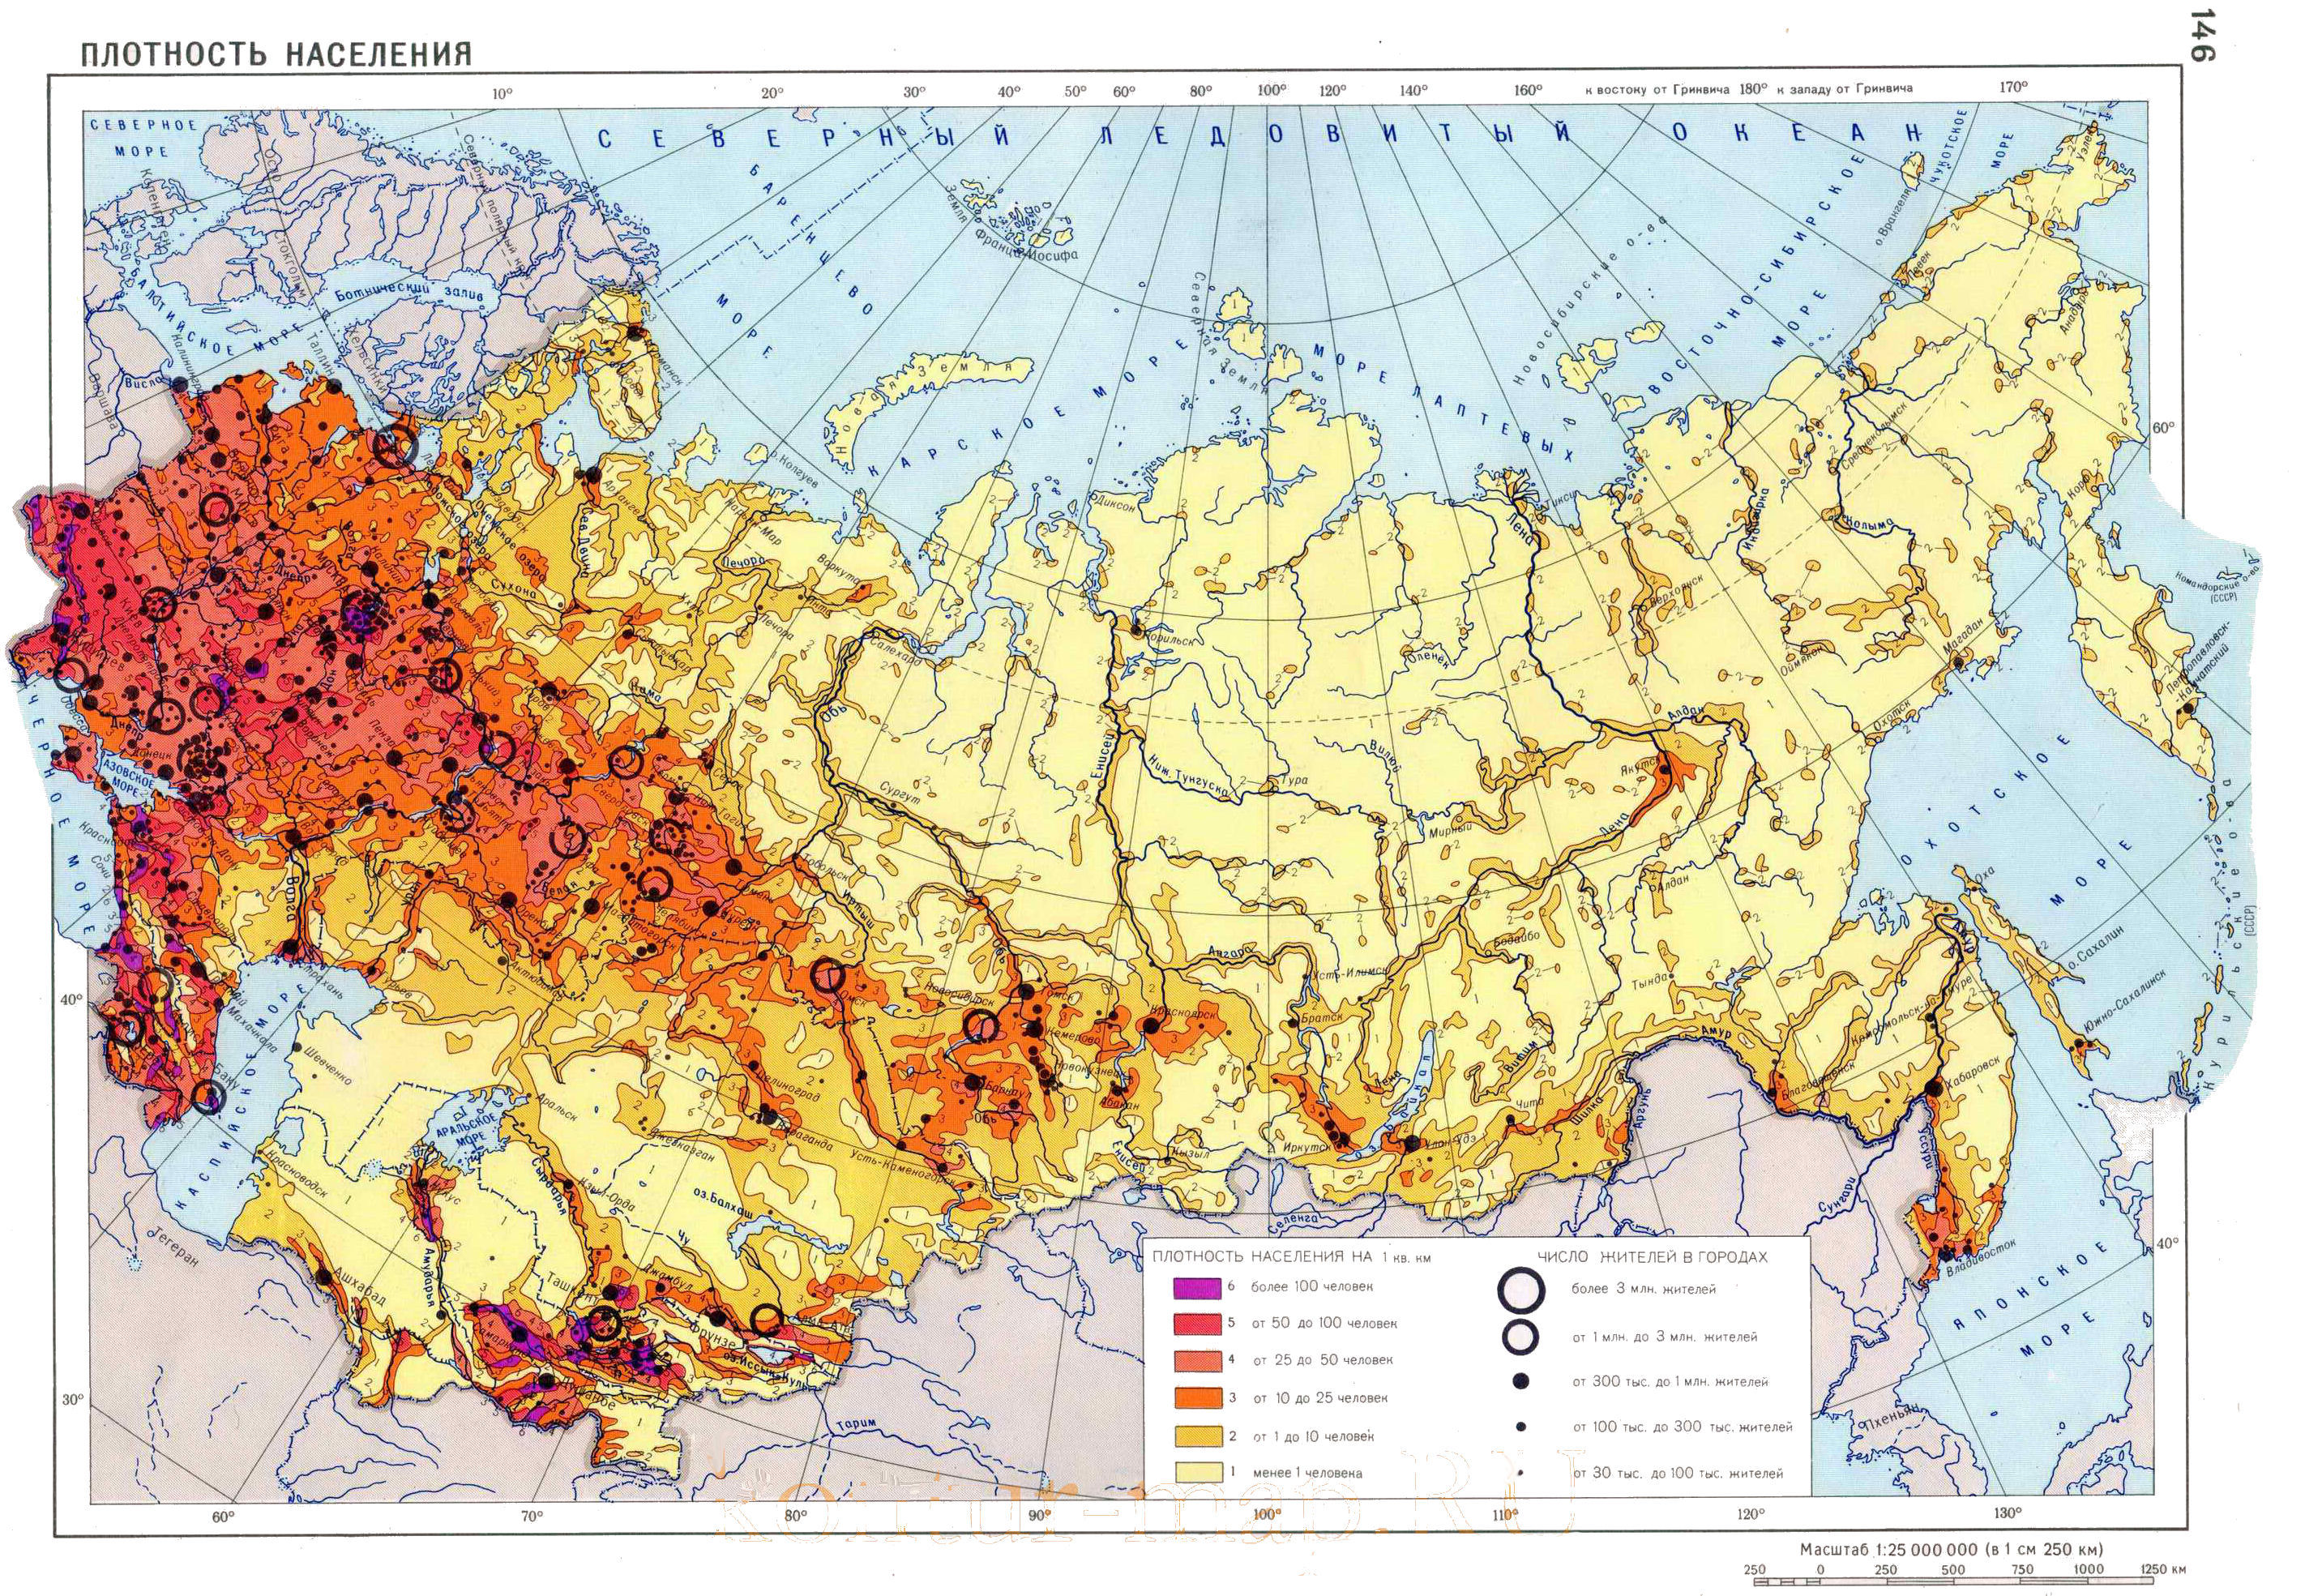 Russia Population Density Map My Blog - Russia on a map